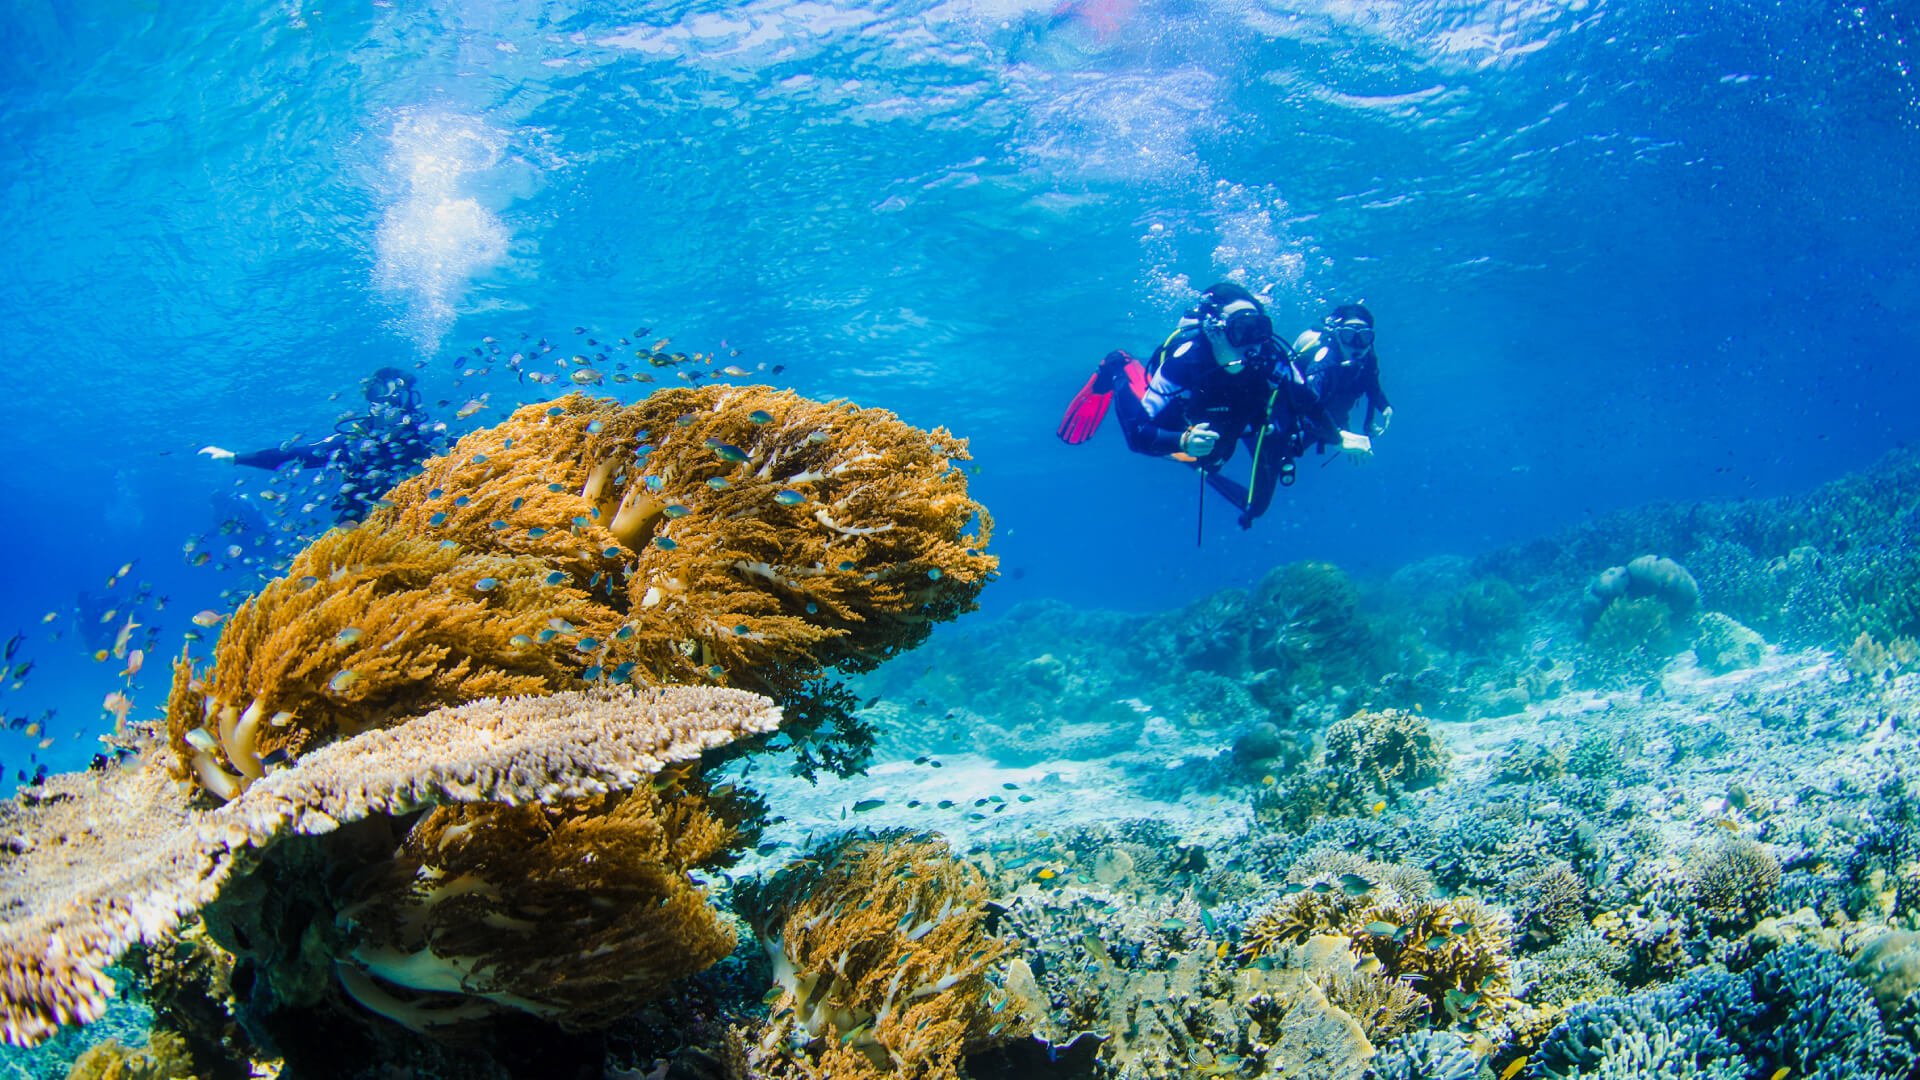 Become a Dive Master with our Dive Training Professional Internship in Raja Ampat, Indonesia